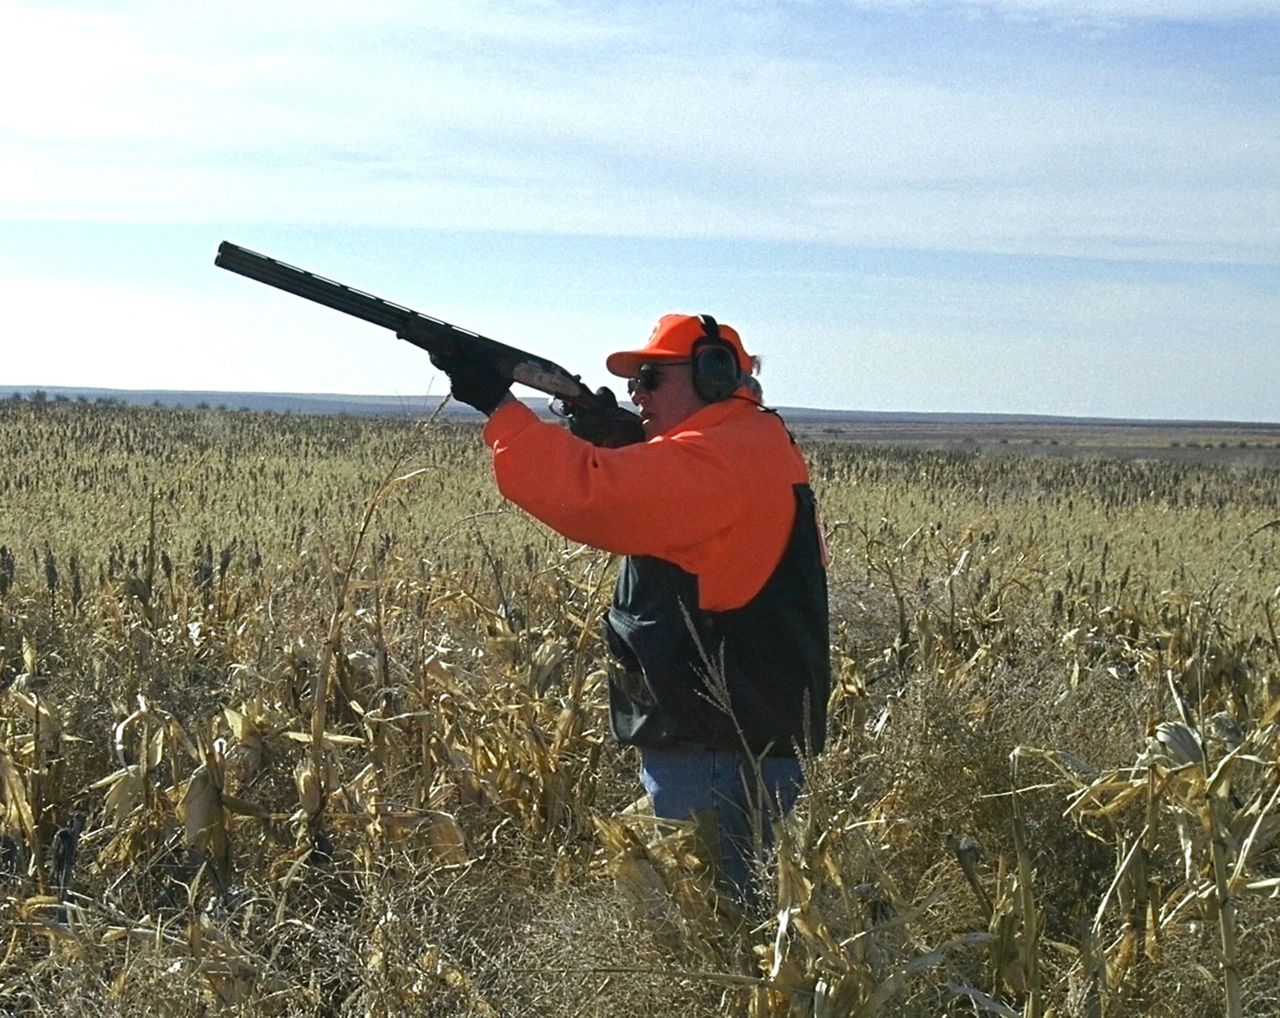 Dick Cheney op jacht. Foto AP ** FILE ** A Nov. 5, 2002 file photo provided by the White House, Tuesday, Feb. 14, 2006, shows Vice President Dick Cheney hunting quail in Gettysburg, South Dakota, (AP Photo/David Bohrer, White House)